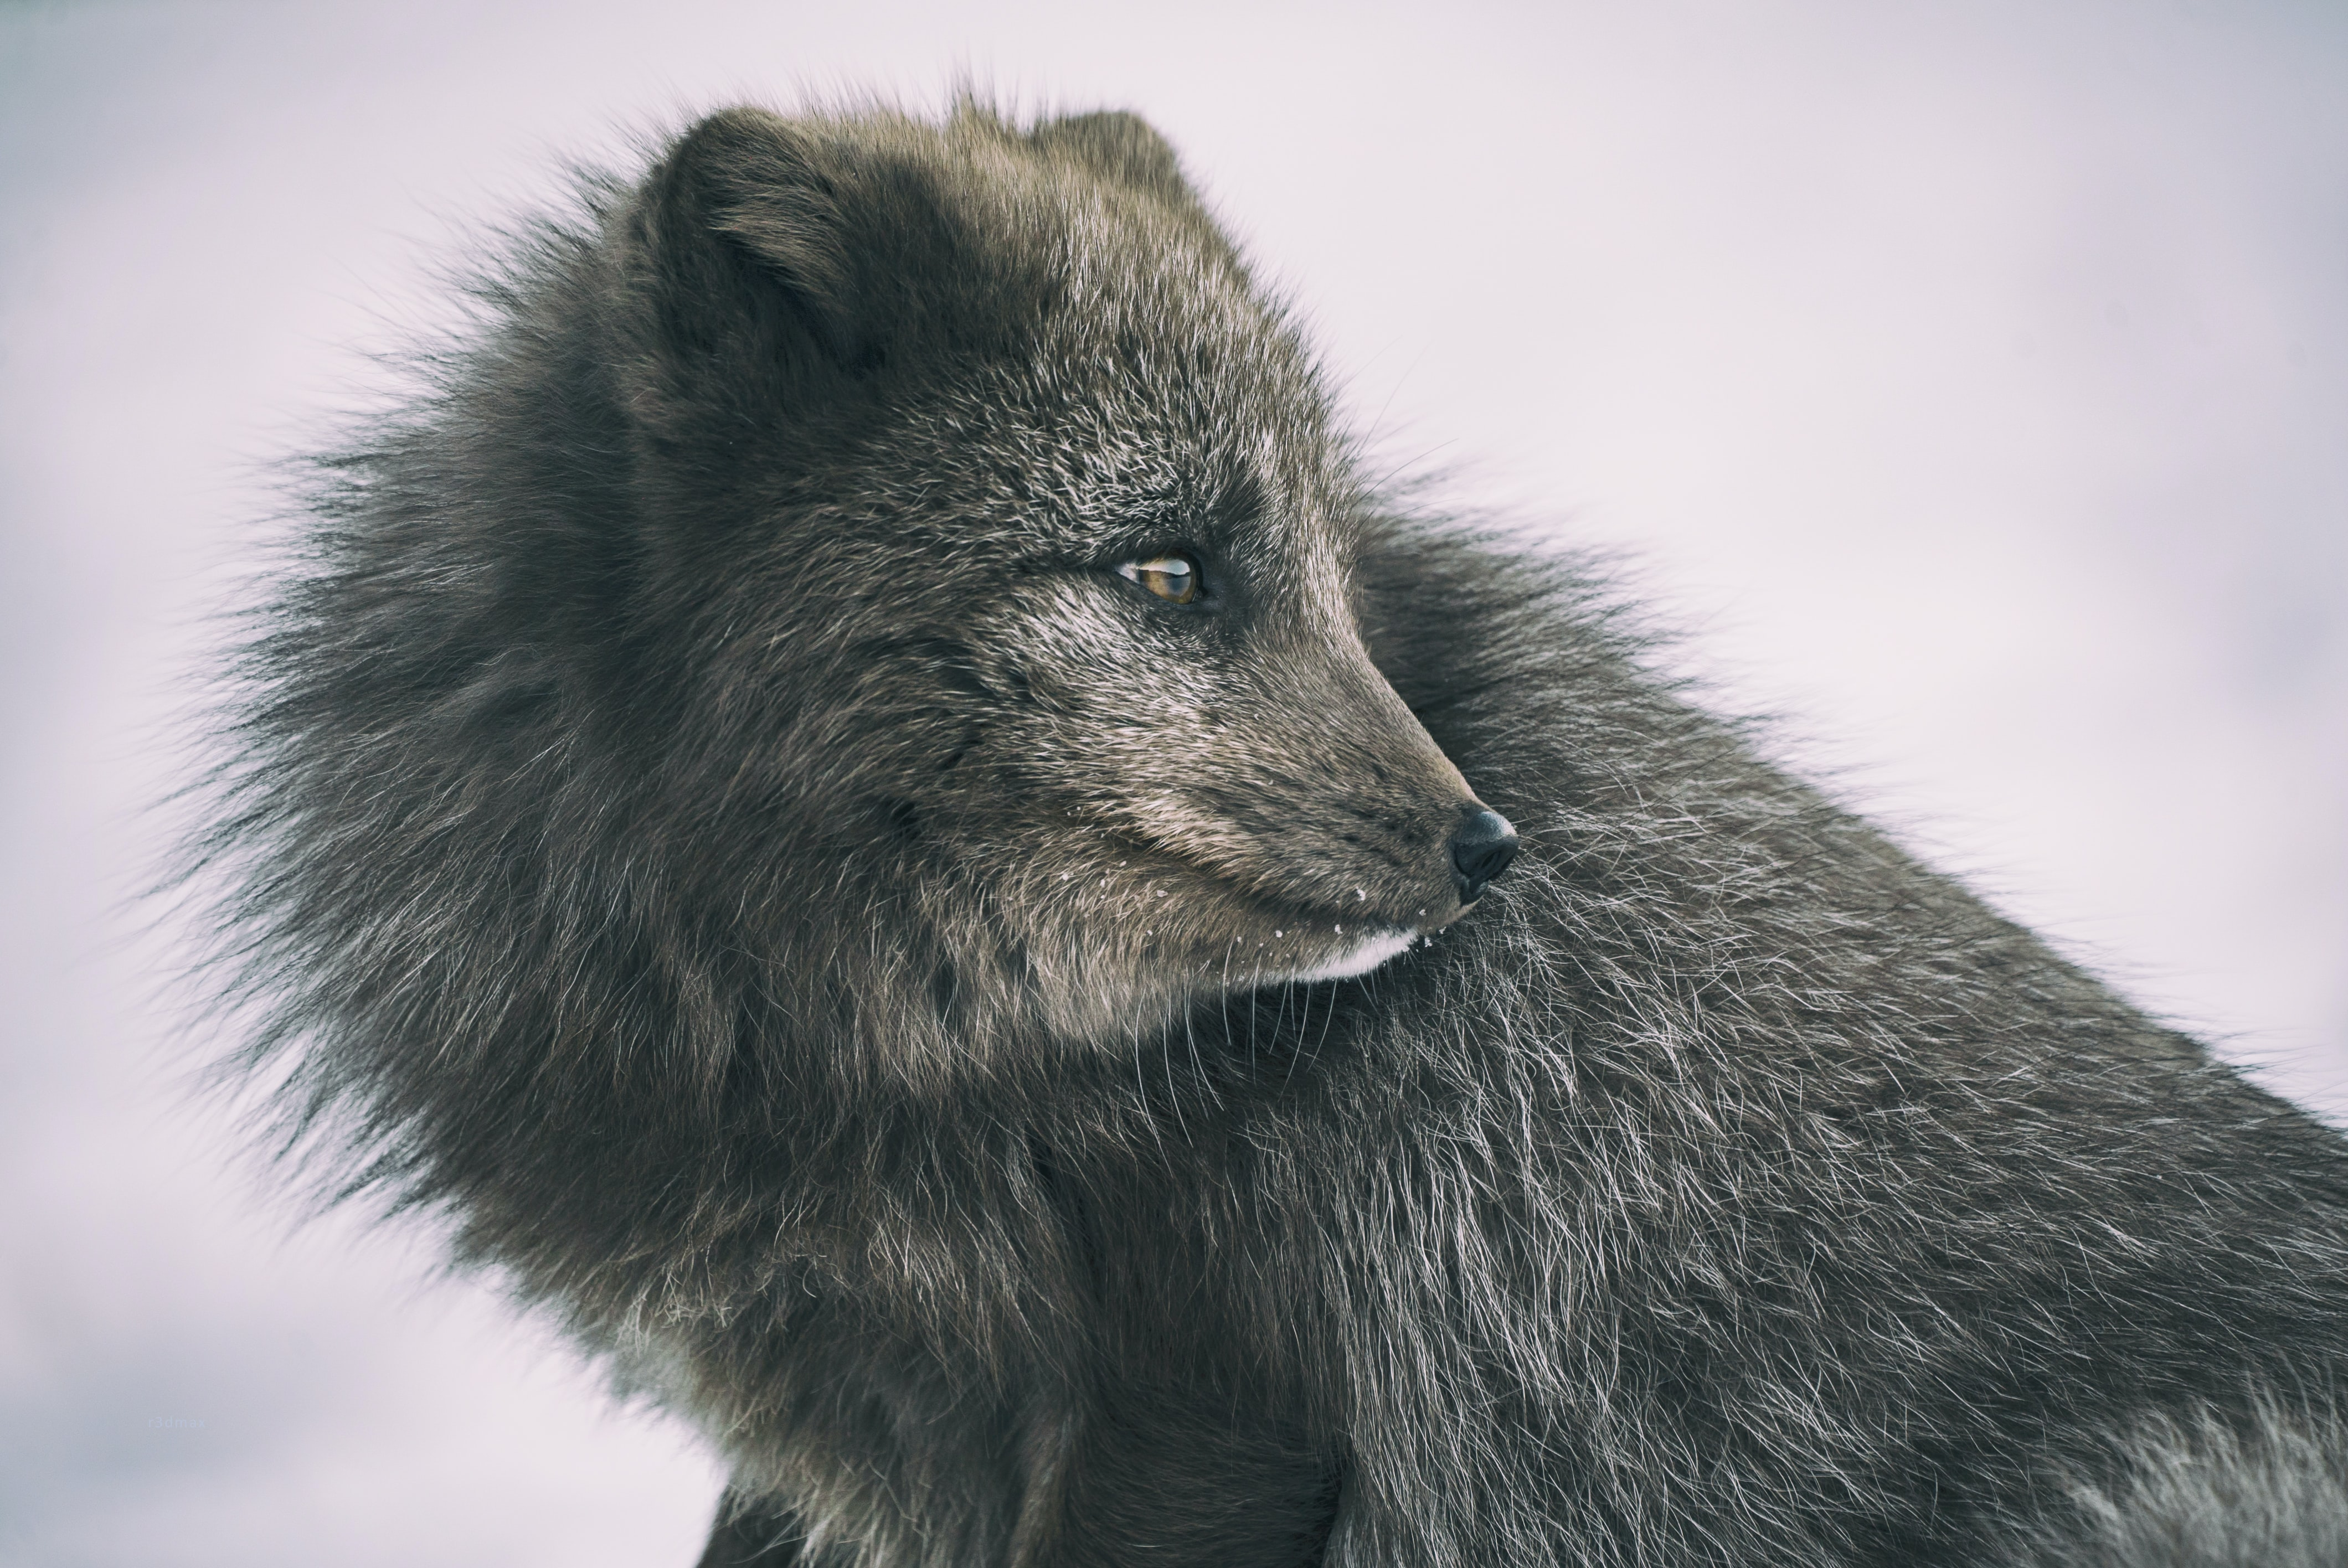 close-up photography of gray animal